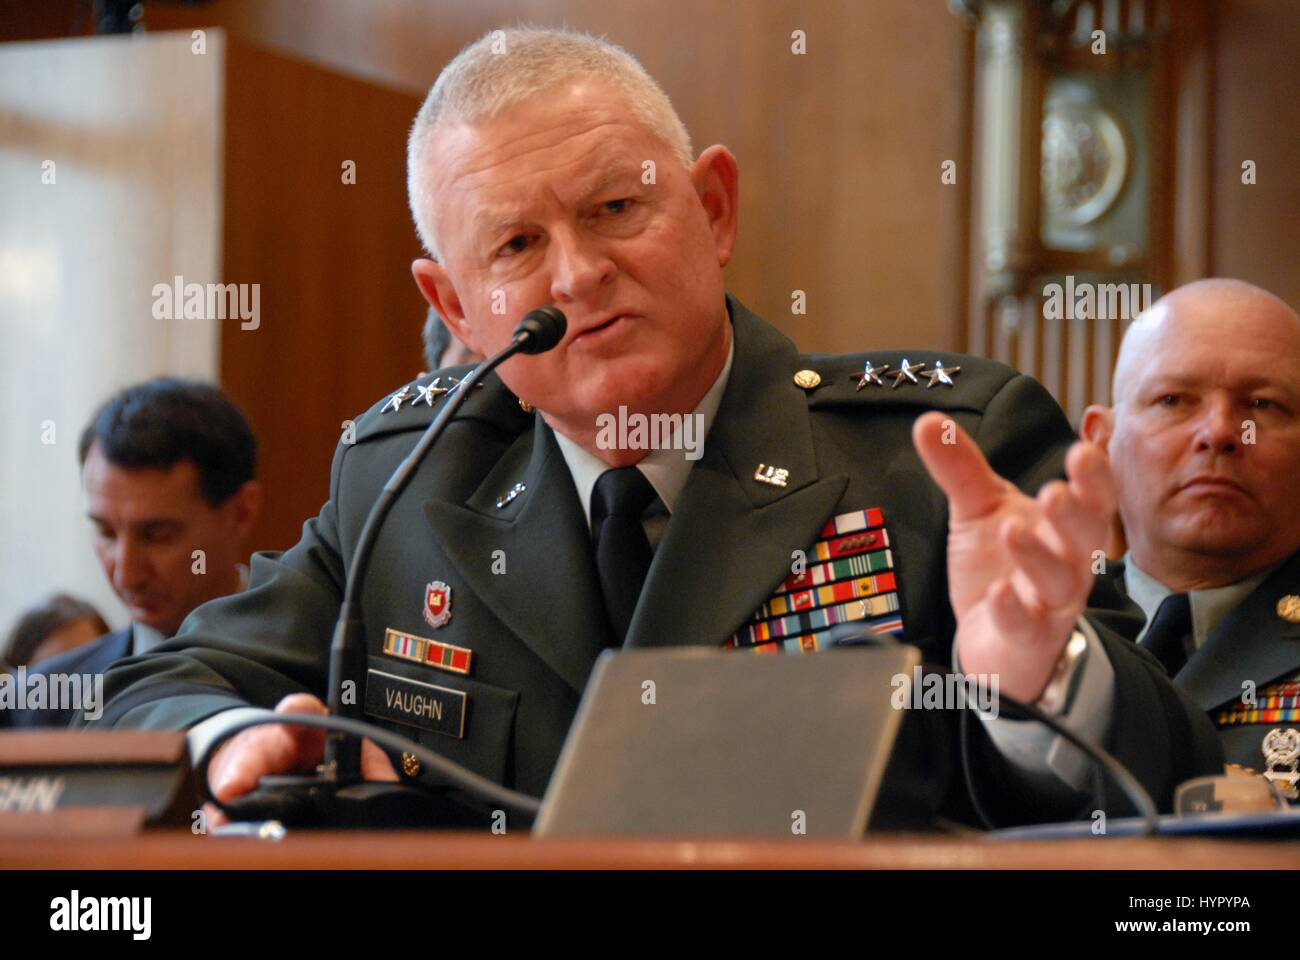 U.S. Army National Guard Director Clyde Vaughn testifies before the Senate Appropriations Subcommittee on Defense - Stock Image